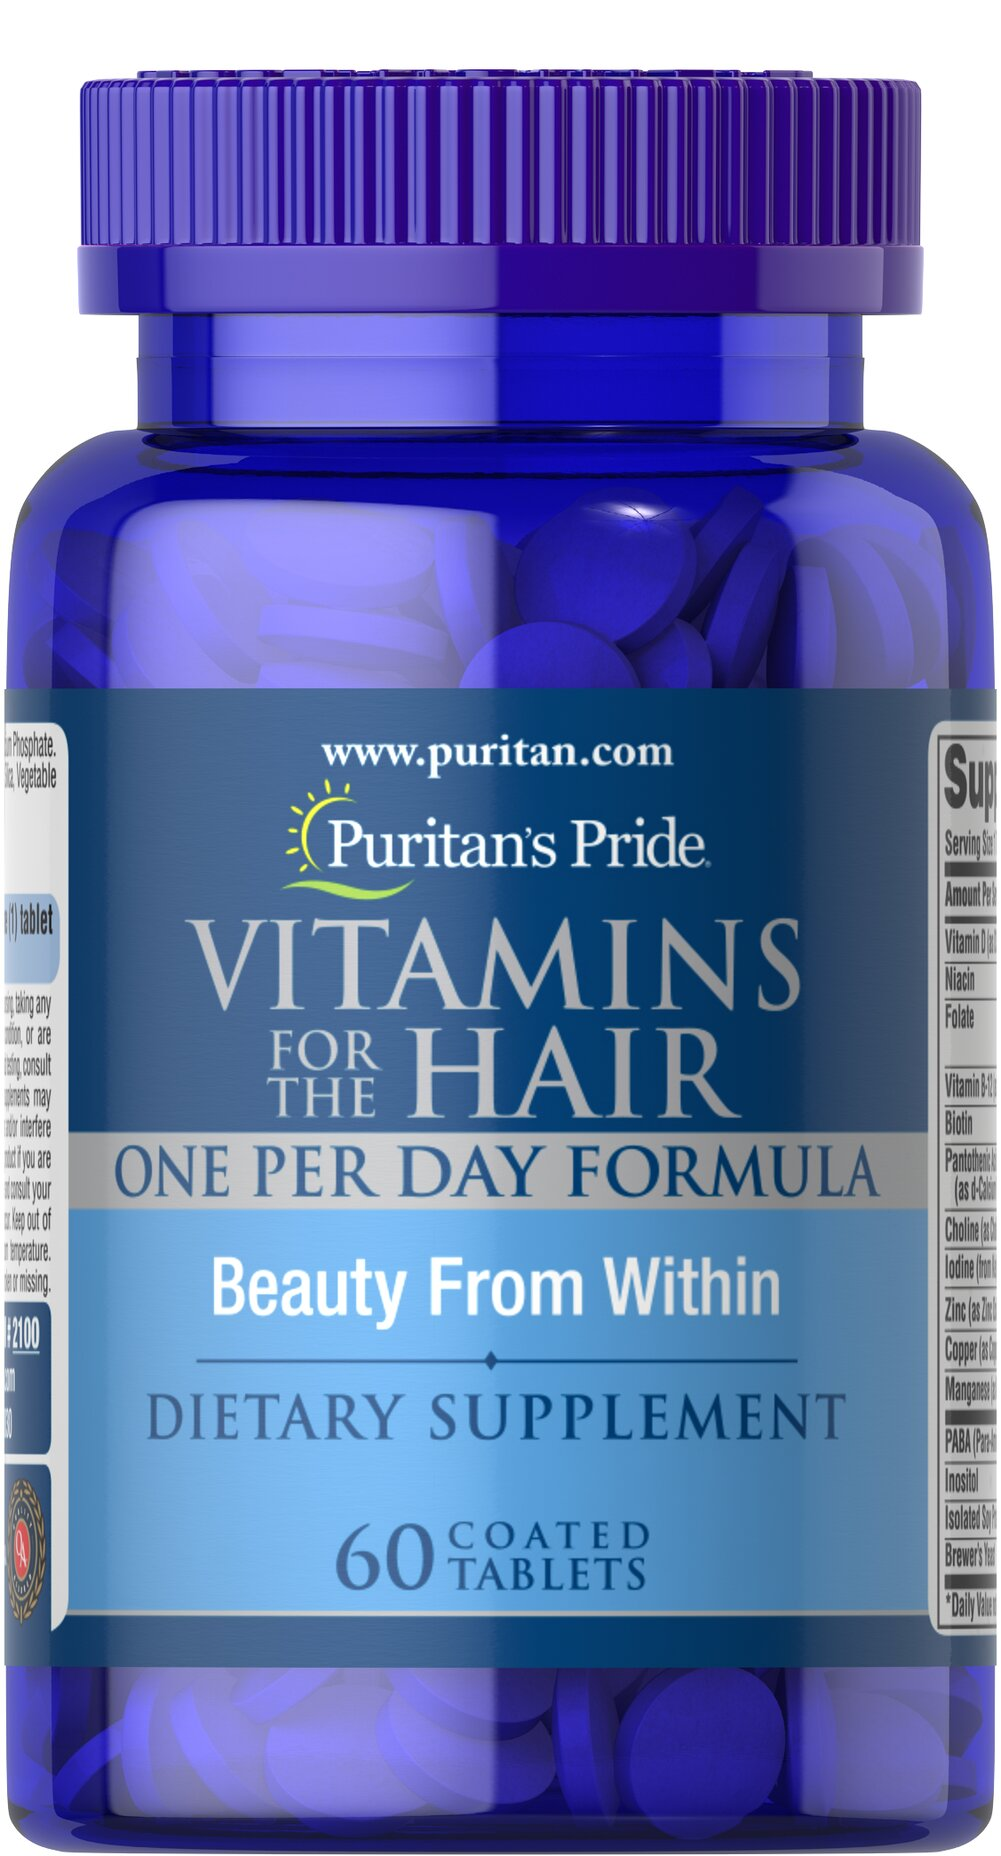 Vitamins for the Hair <p>A Natural Vitamin-Mineral Complex, especially Formulated for your Hair</p><p>Puritan's Pride has formulated Vitamins  for the Hair, to supplement your diet plan for a healthier looking head of hair.  Feed your hair the vitamins and minerals needed to help it be its healthiest.**</p> 60 Coated Caplets  $10.39